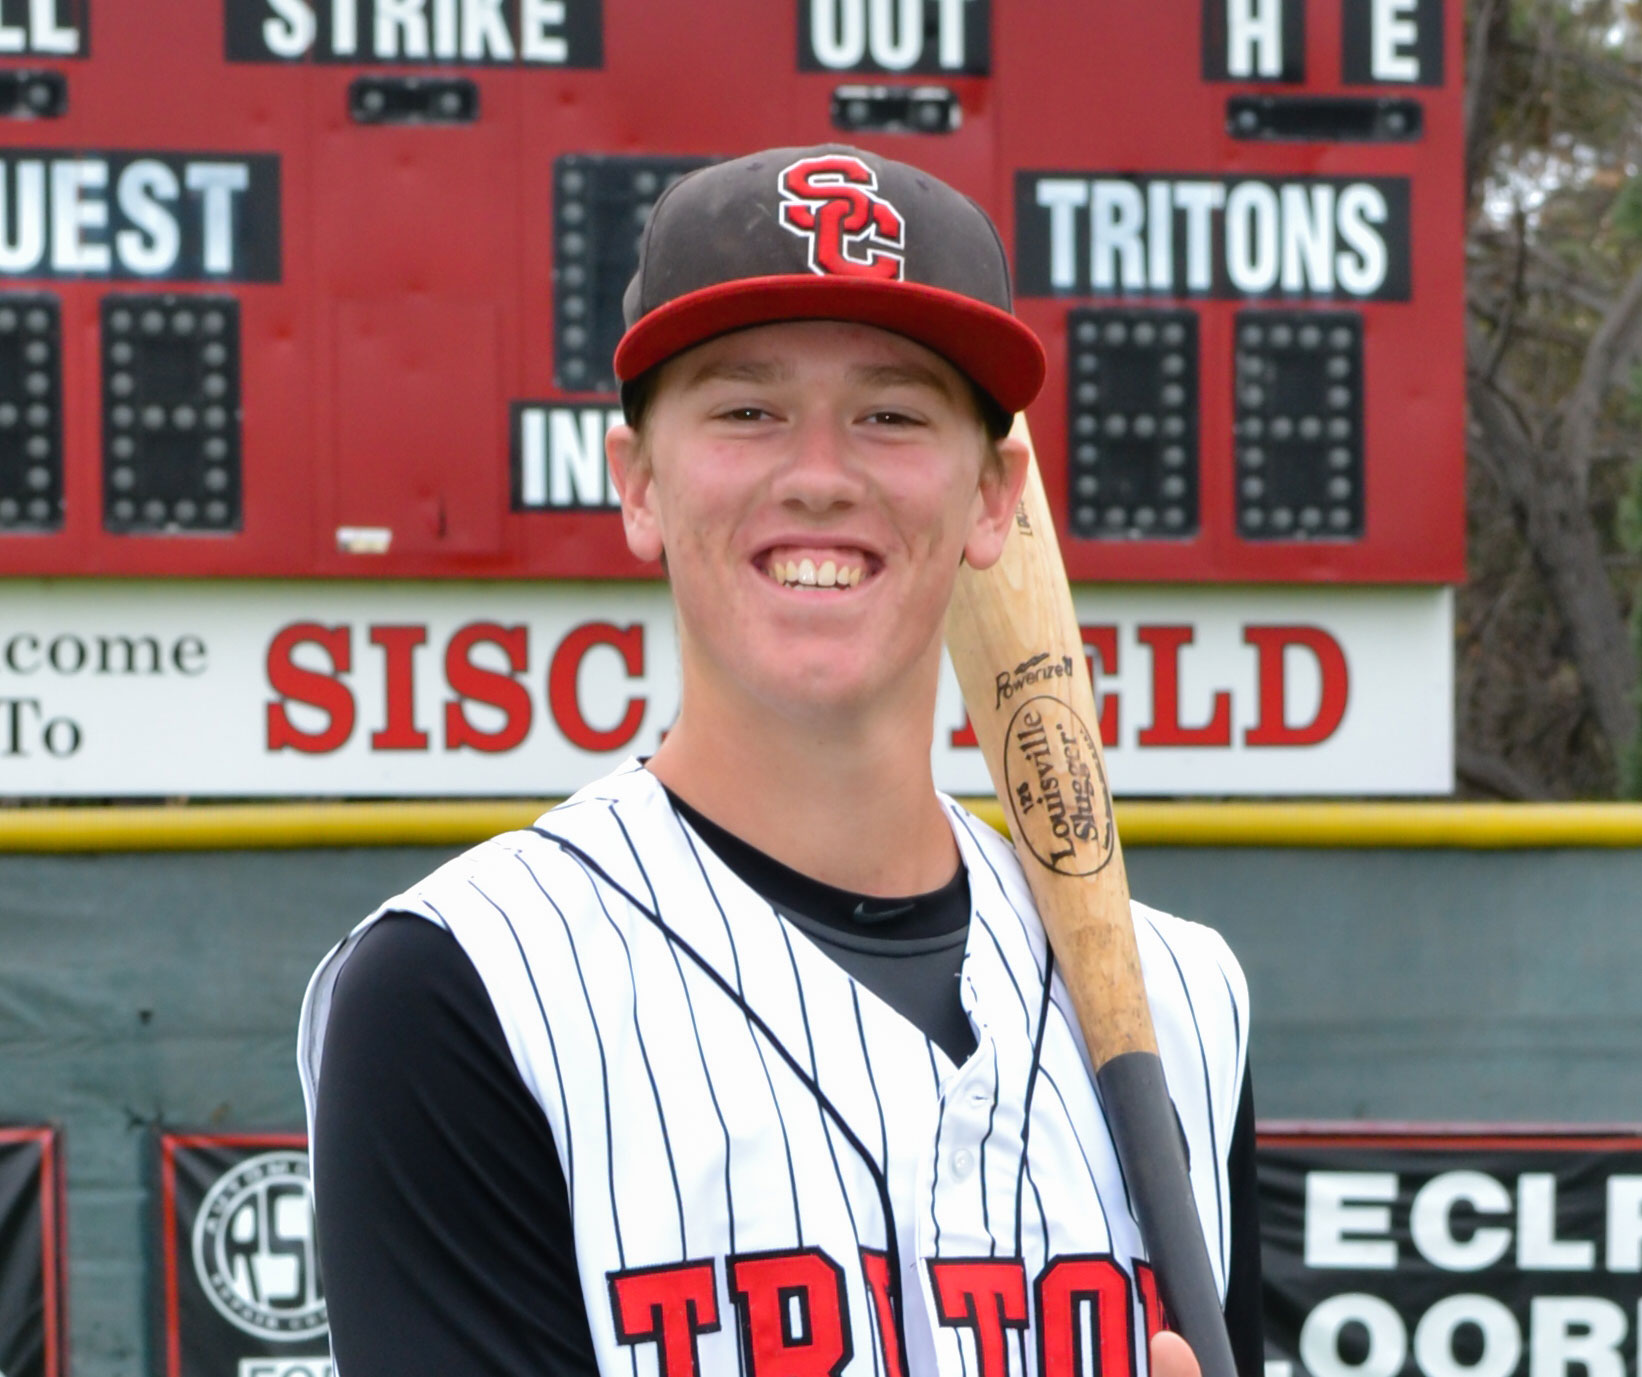 San Clemente baseball star Kolby Allard may not pitch again this season unless his team goes deep in the playoffs, his coach says.  (Photo: Kevin Dahlgren)